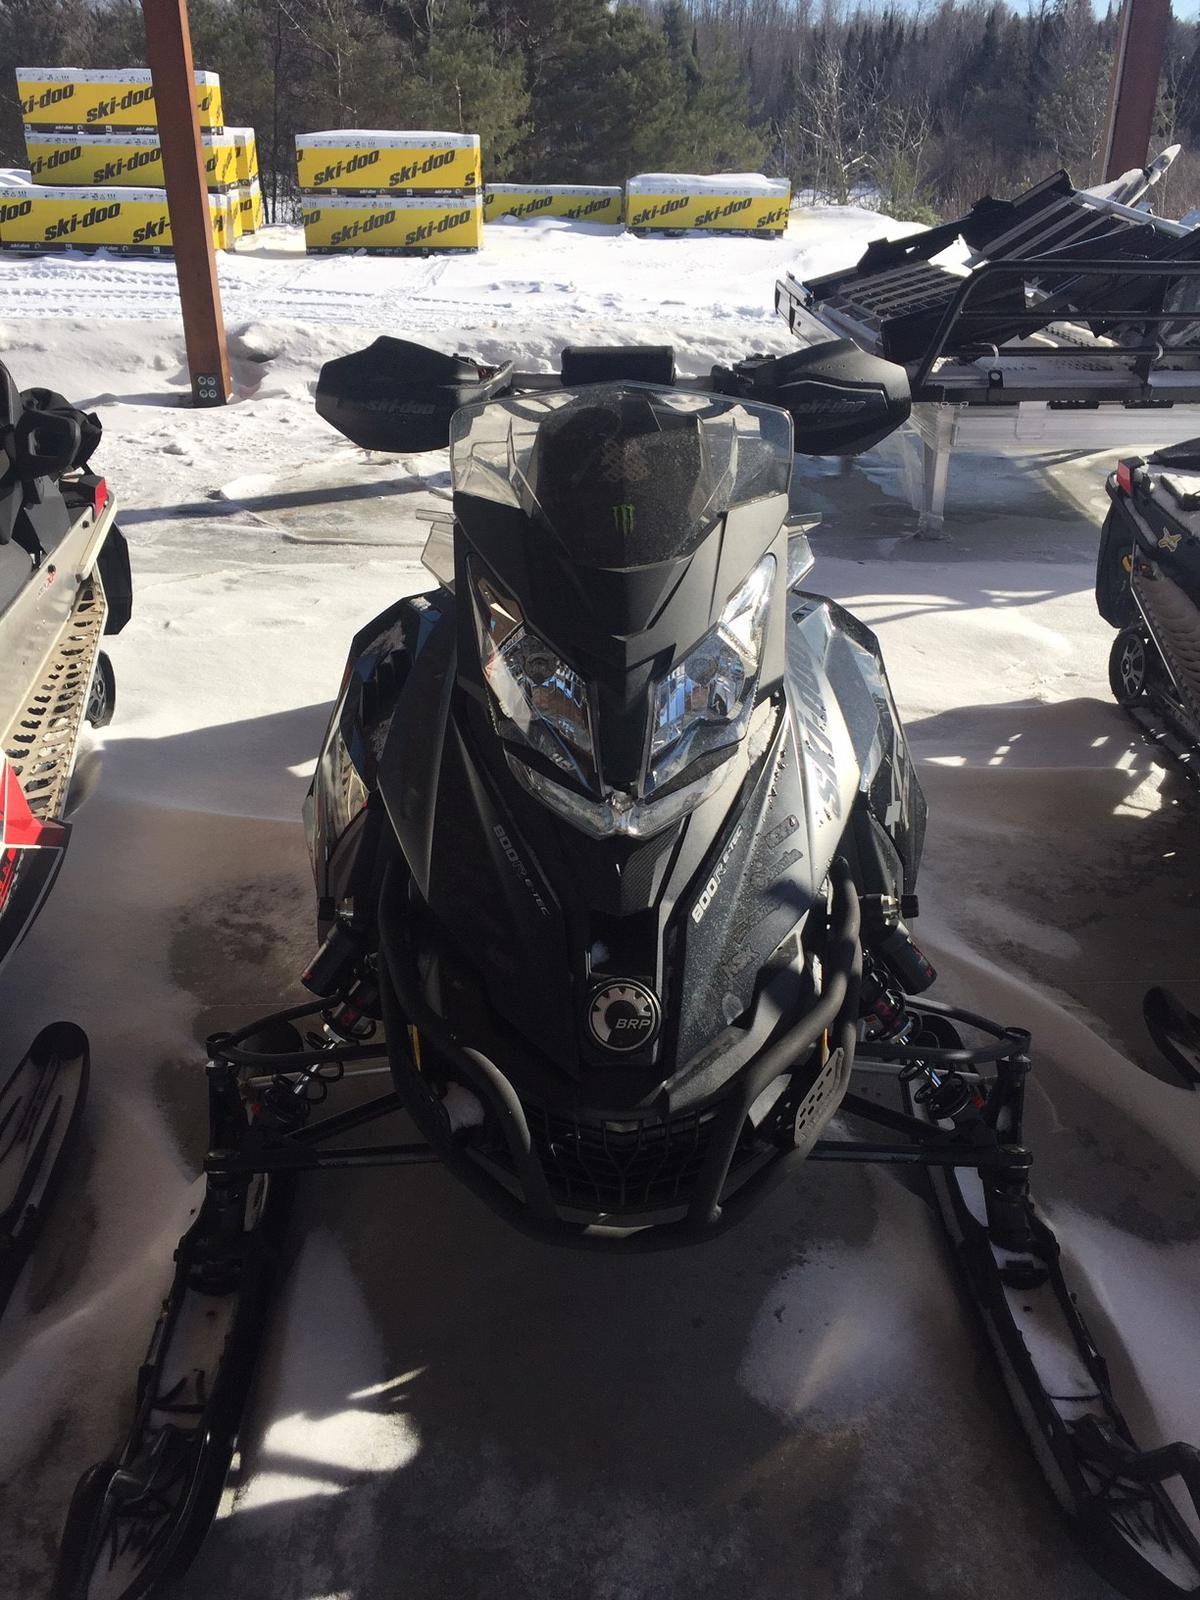 2015 Ski Doo RENEGADE XRS 800 E-TEC | 1 of 1